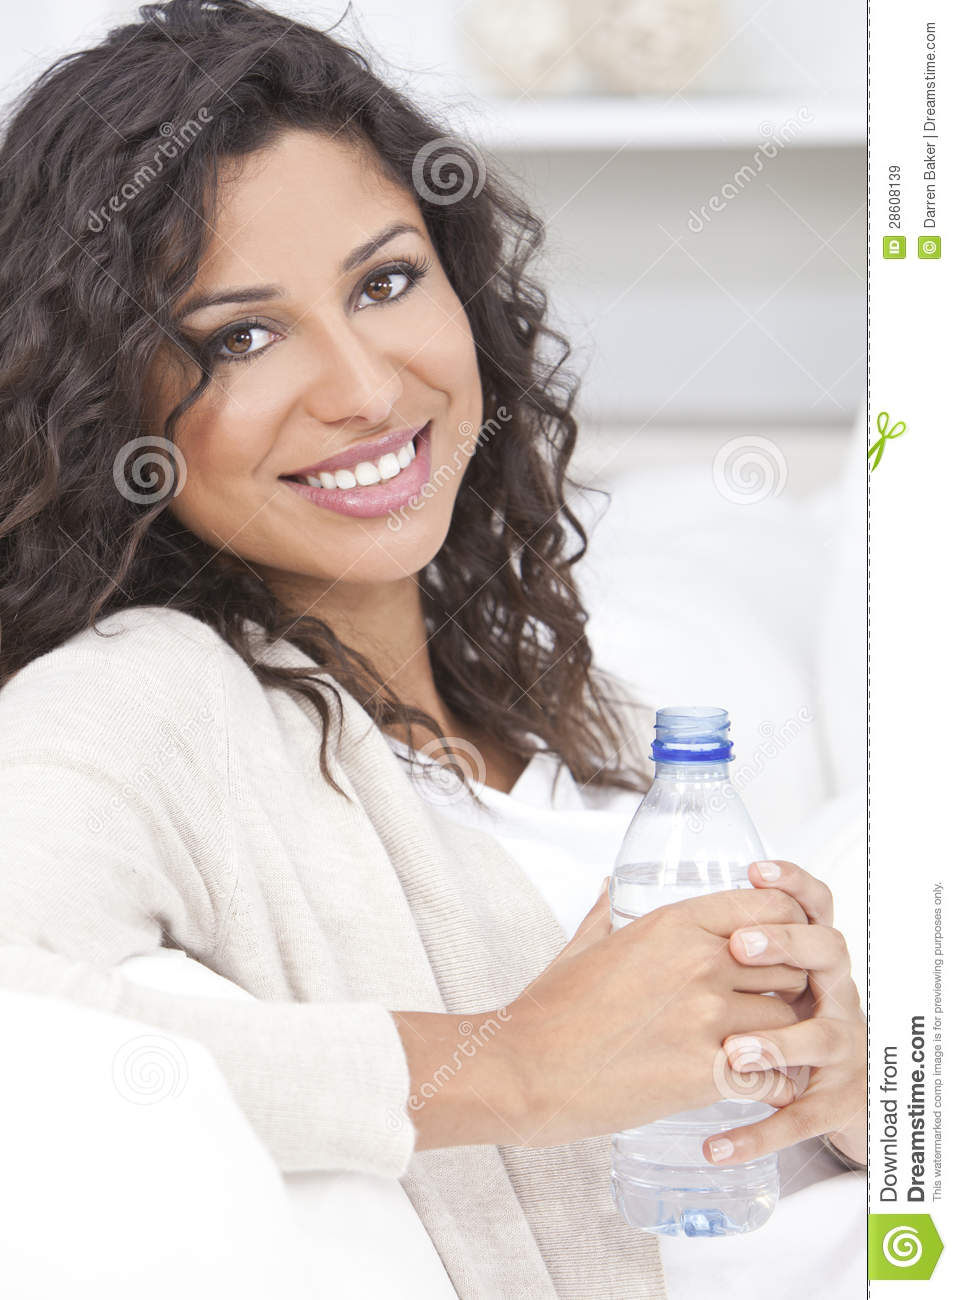 waters hispanic single women A beautiful woman floating in water in a  woman stands in praise before a beautiful night sky beautiful sad and desperate hispanic woman suffering depression.